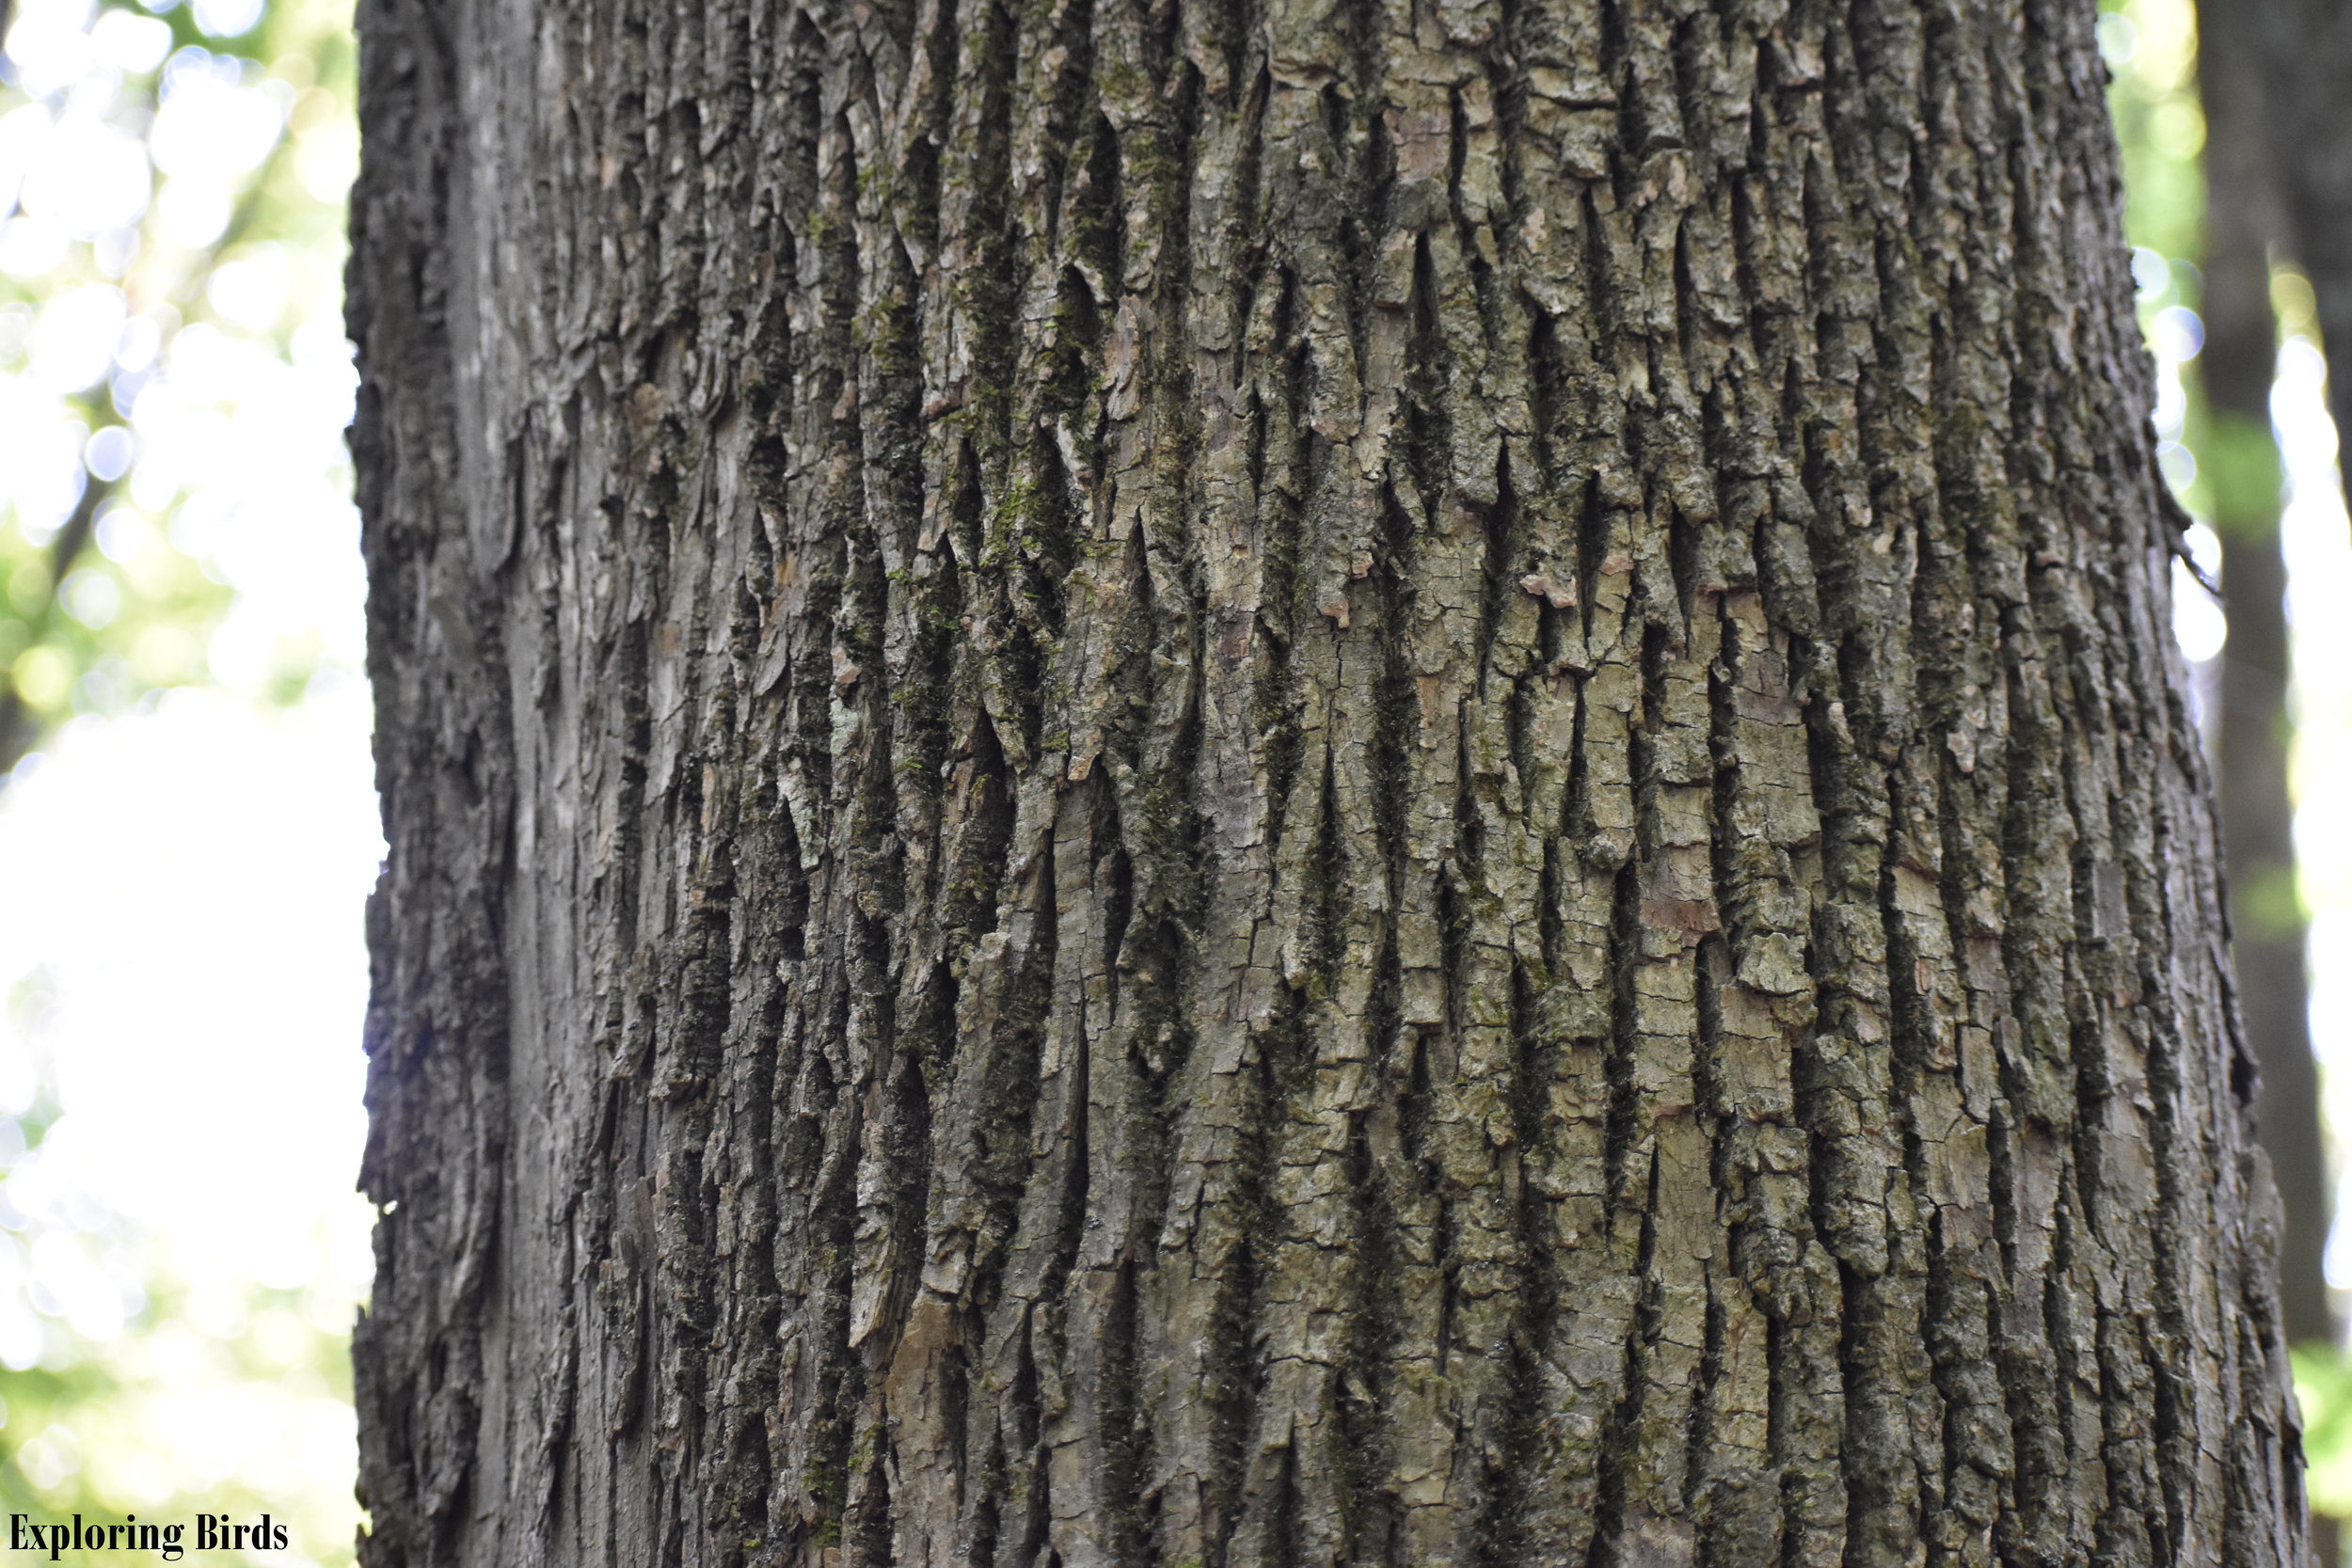 Ash Trees are often used by Woodpecker for nesting and food